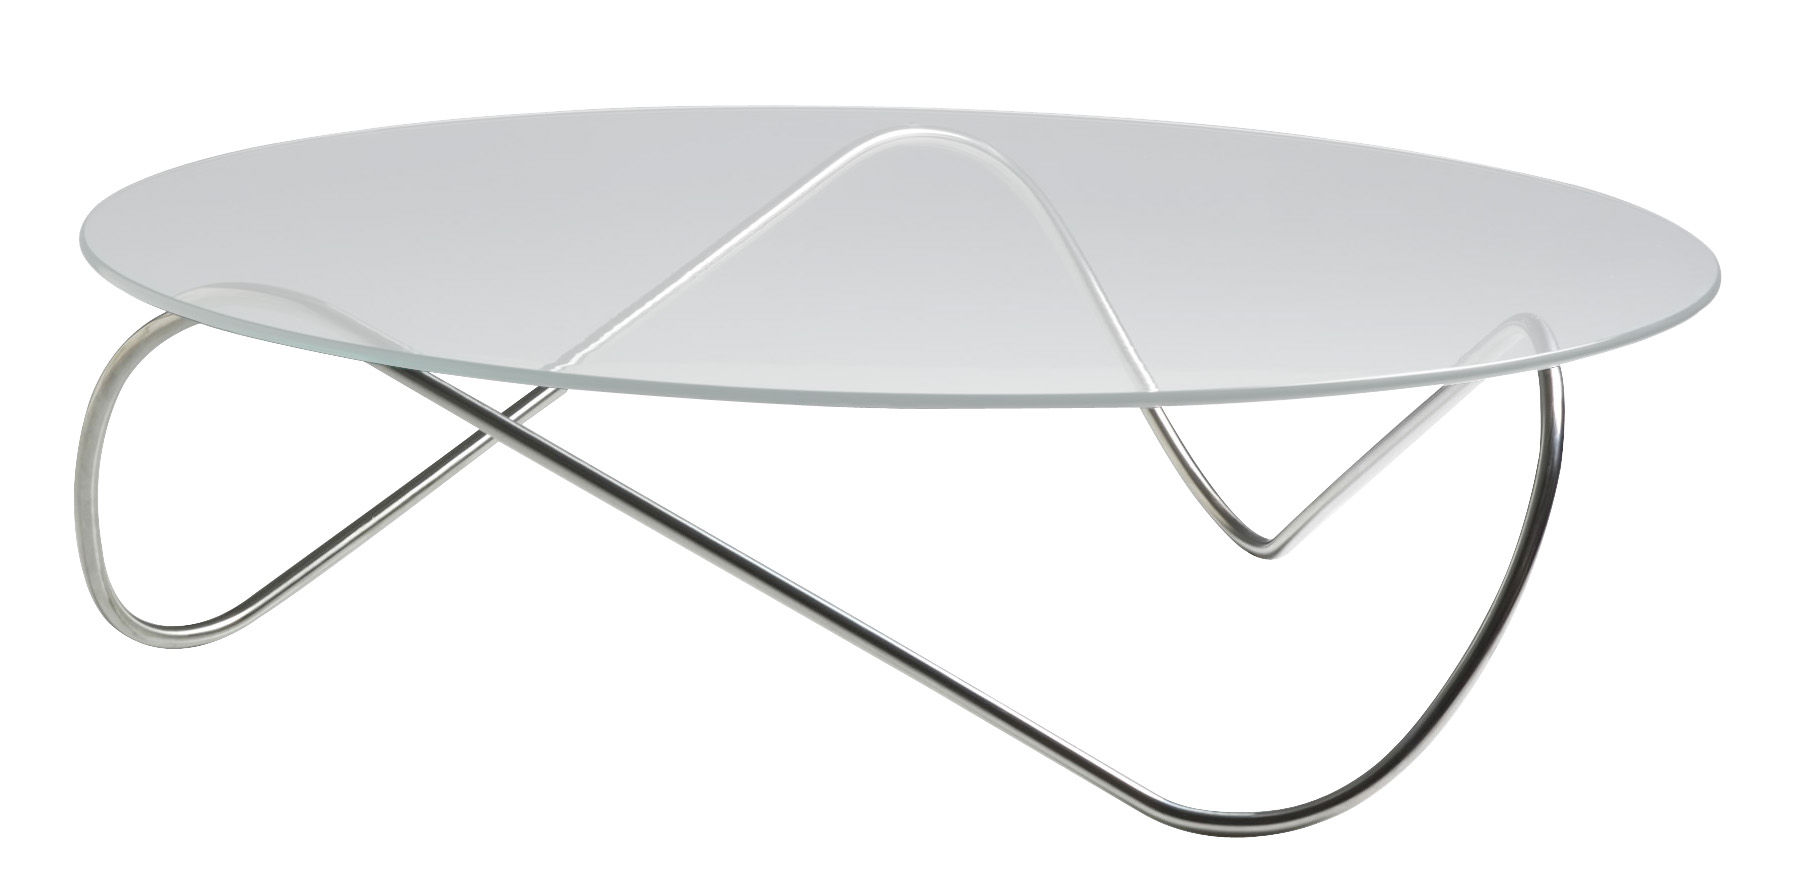 Kaeko coffee table stainless steel structure by objekto for Table html structure